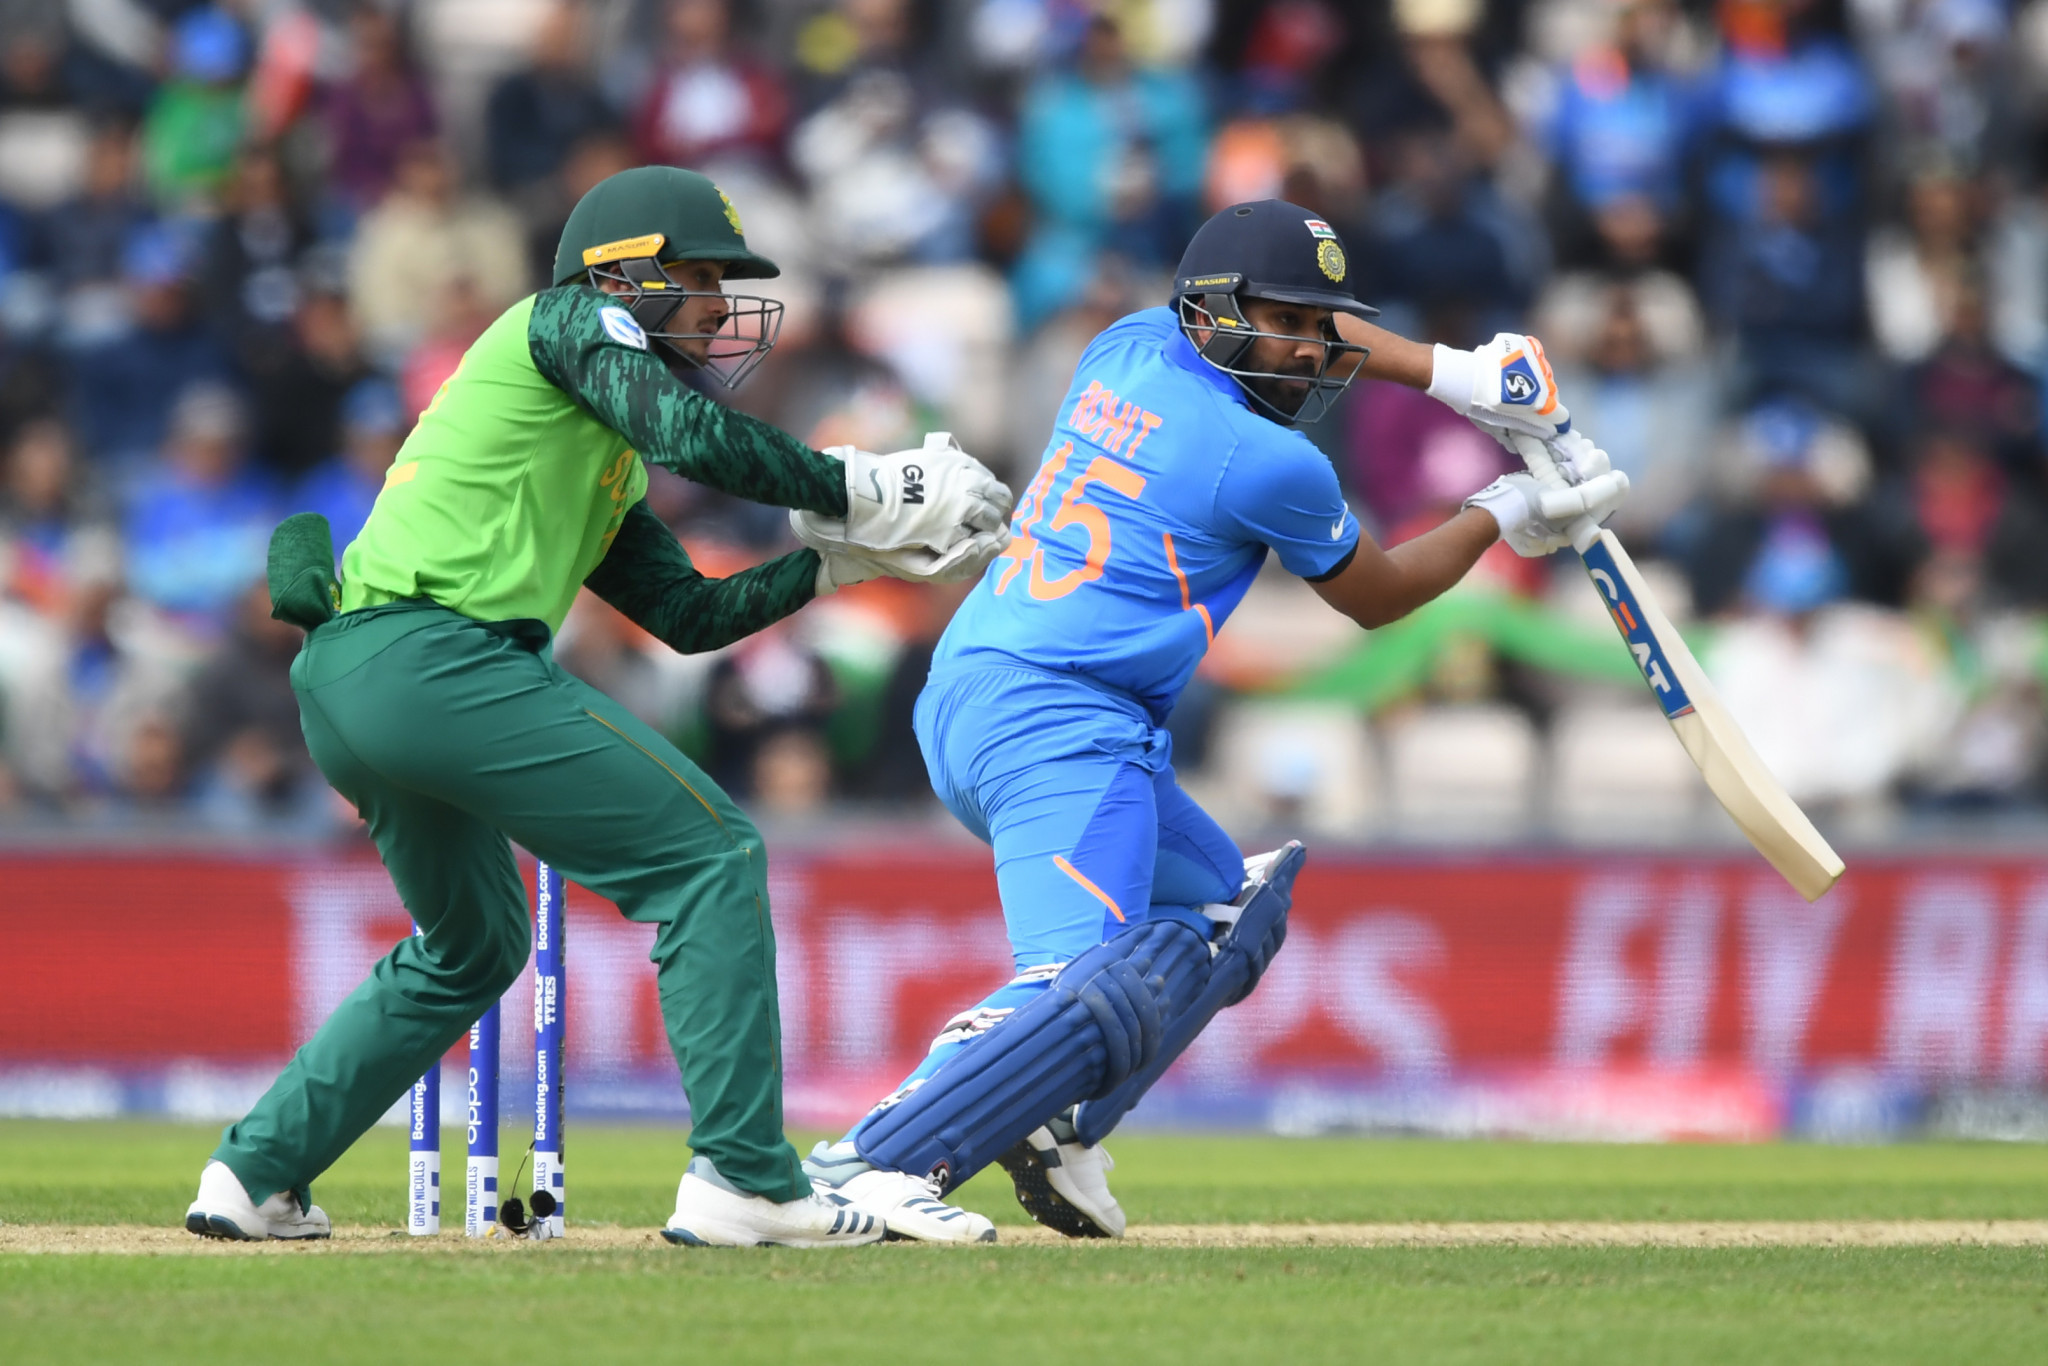 India open Cricket World Cup campaign with victory over South Africa